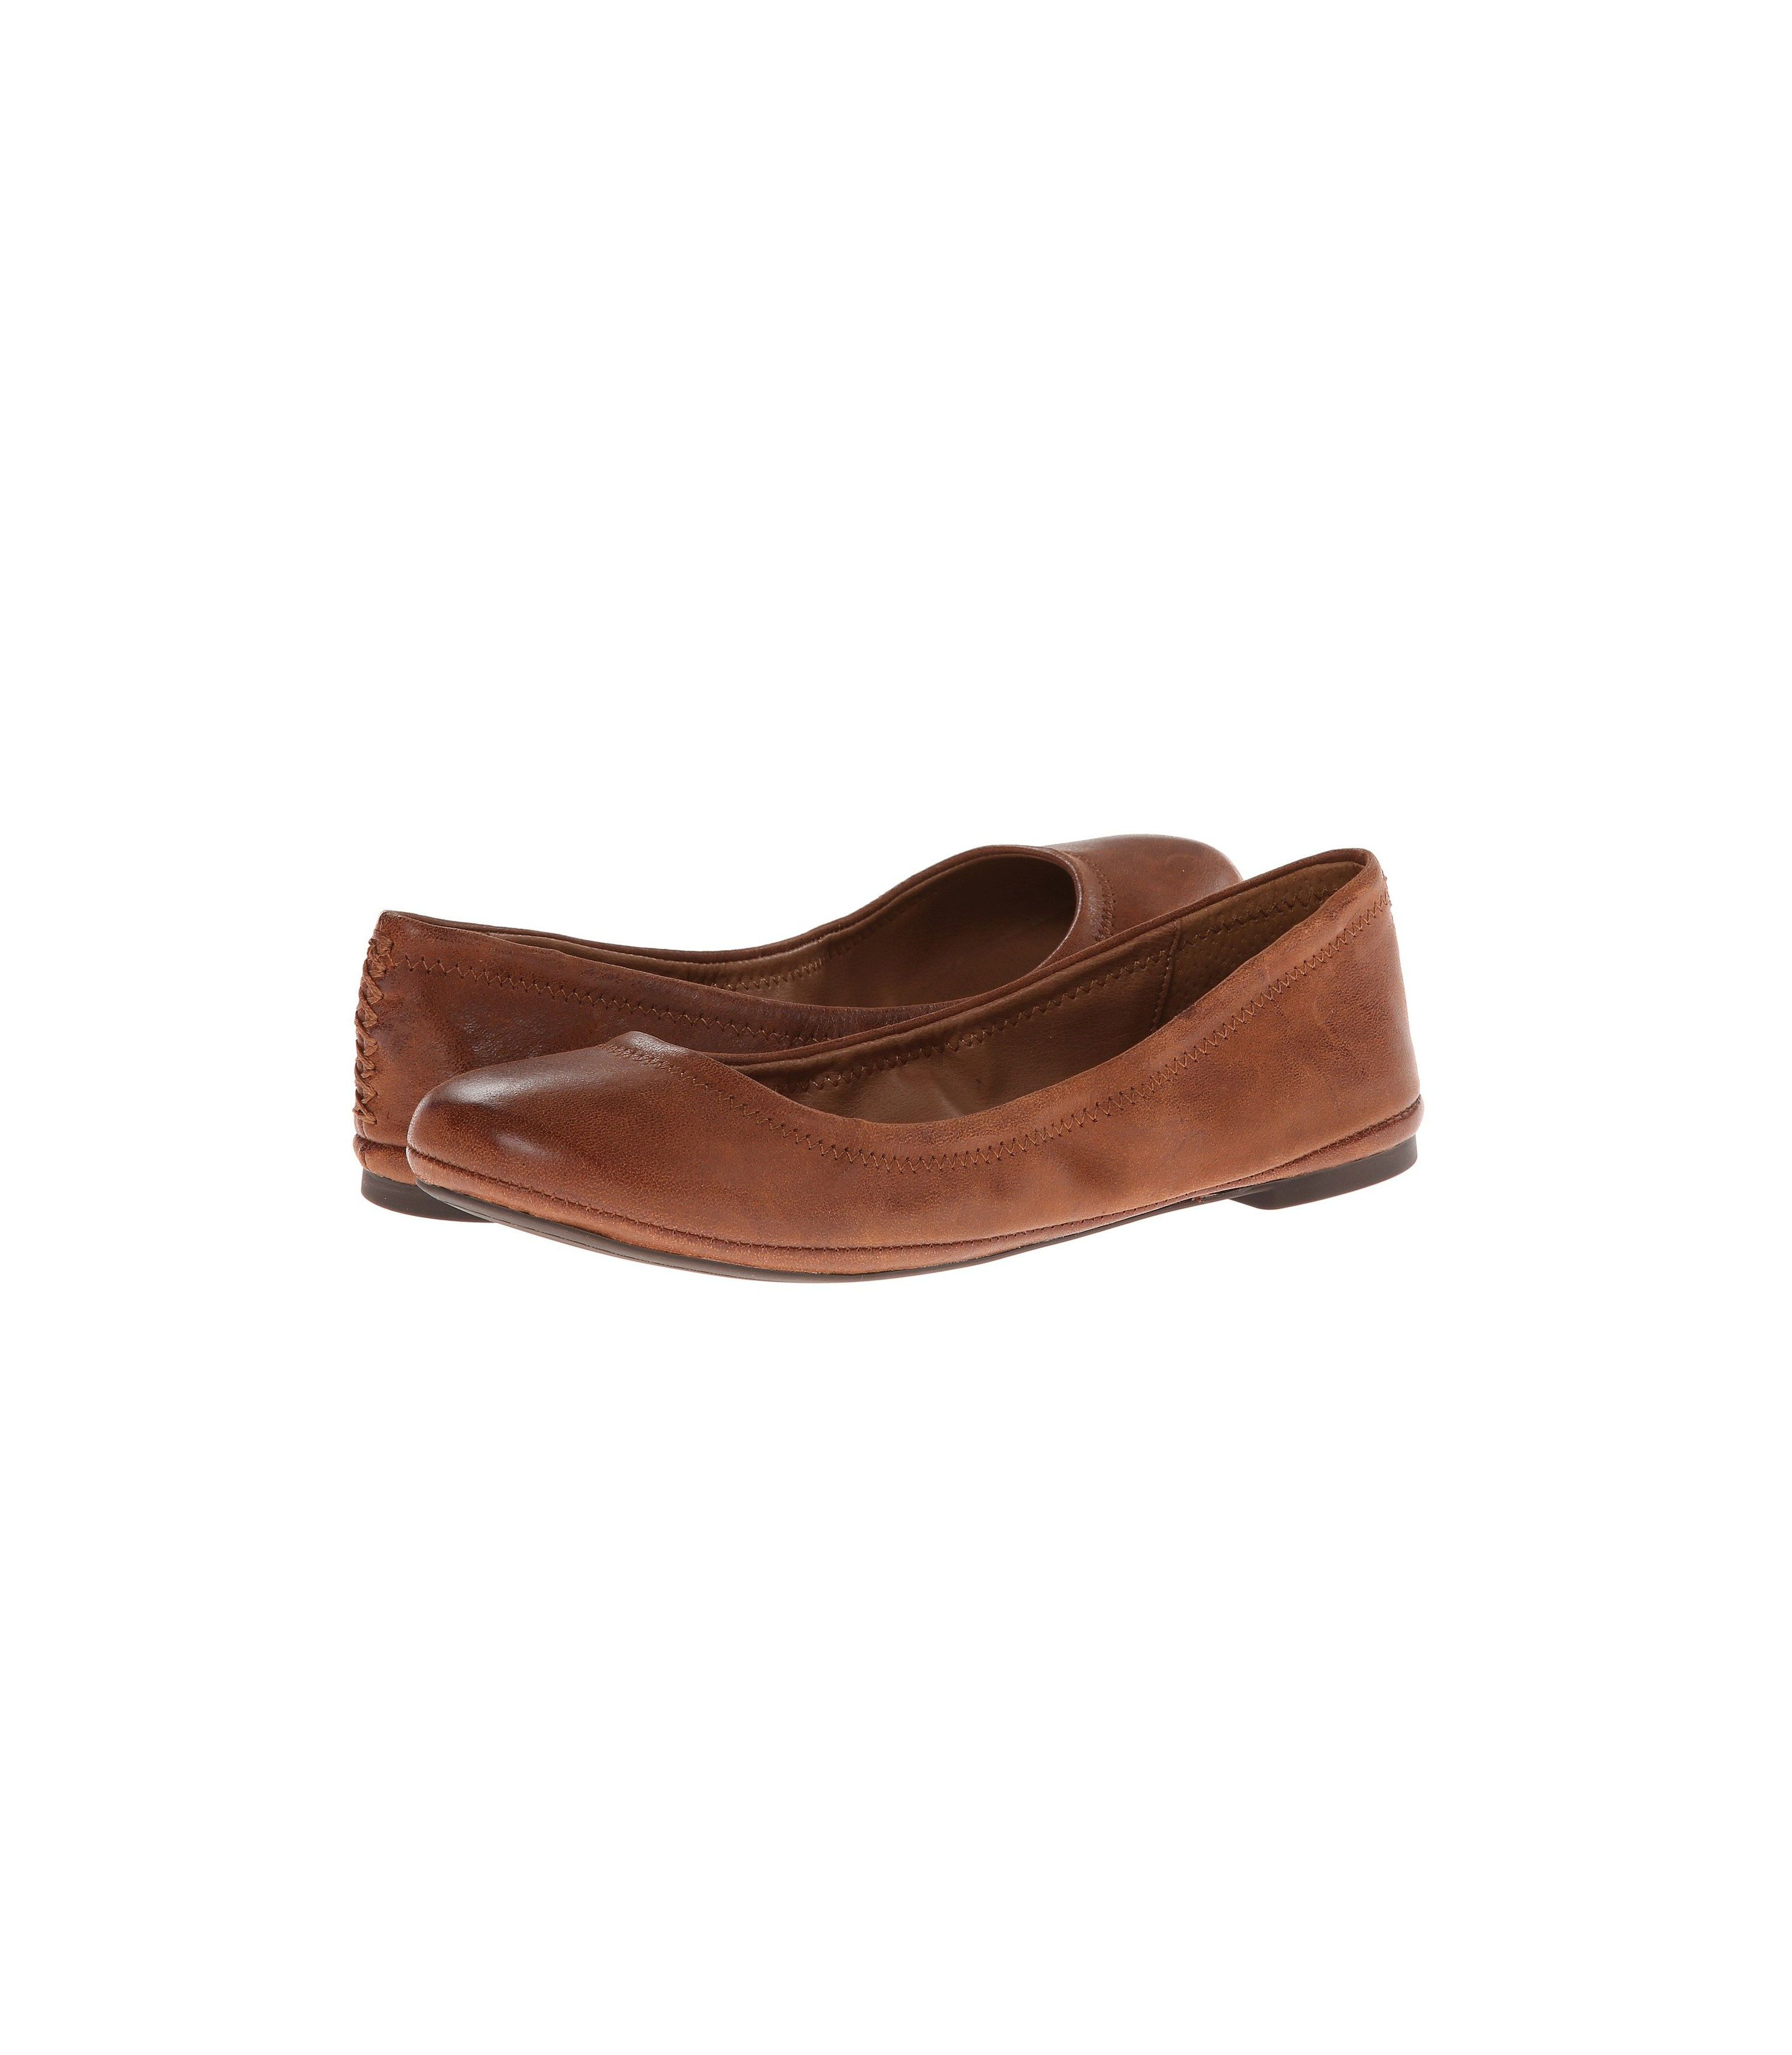 Zappos Best Selling Comfortable Women S Shoes Under 100 Comfort Shoes Women Women Shoes Most Comfortable Shoes